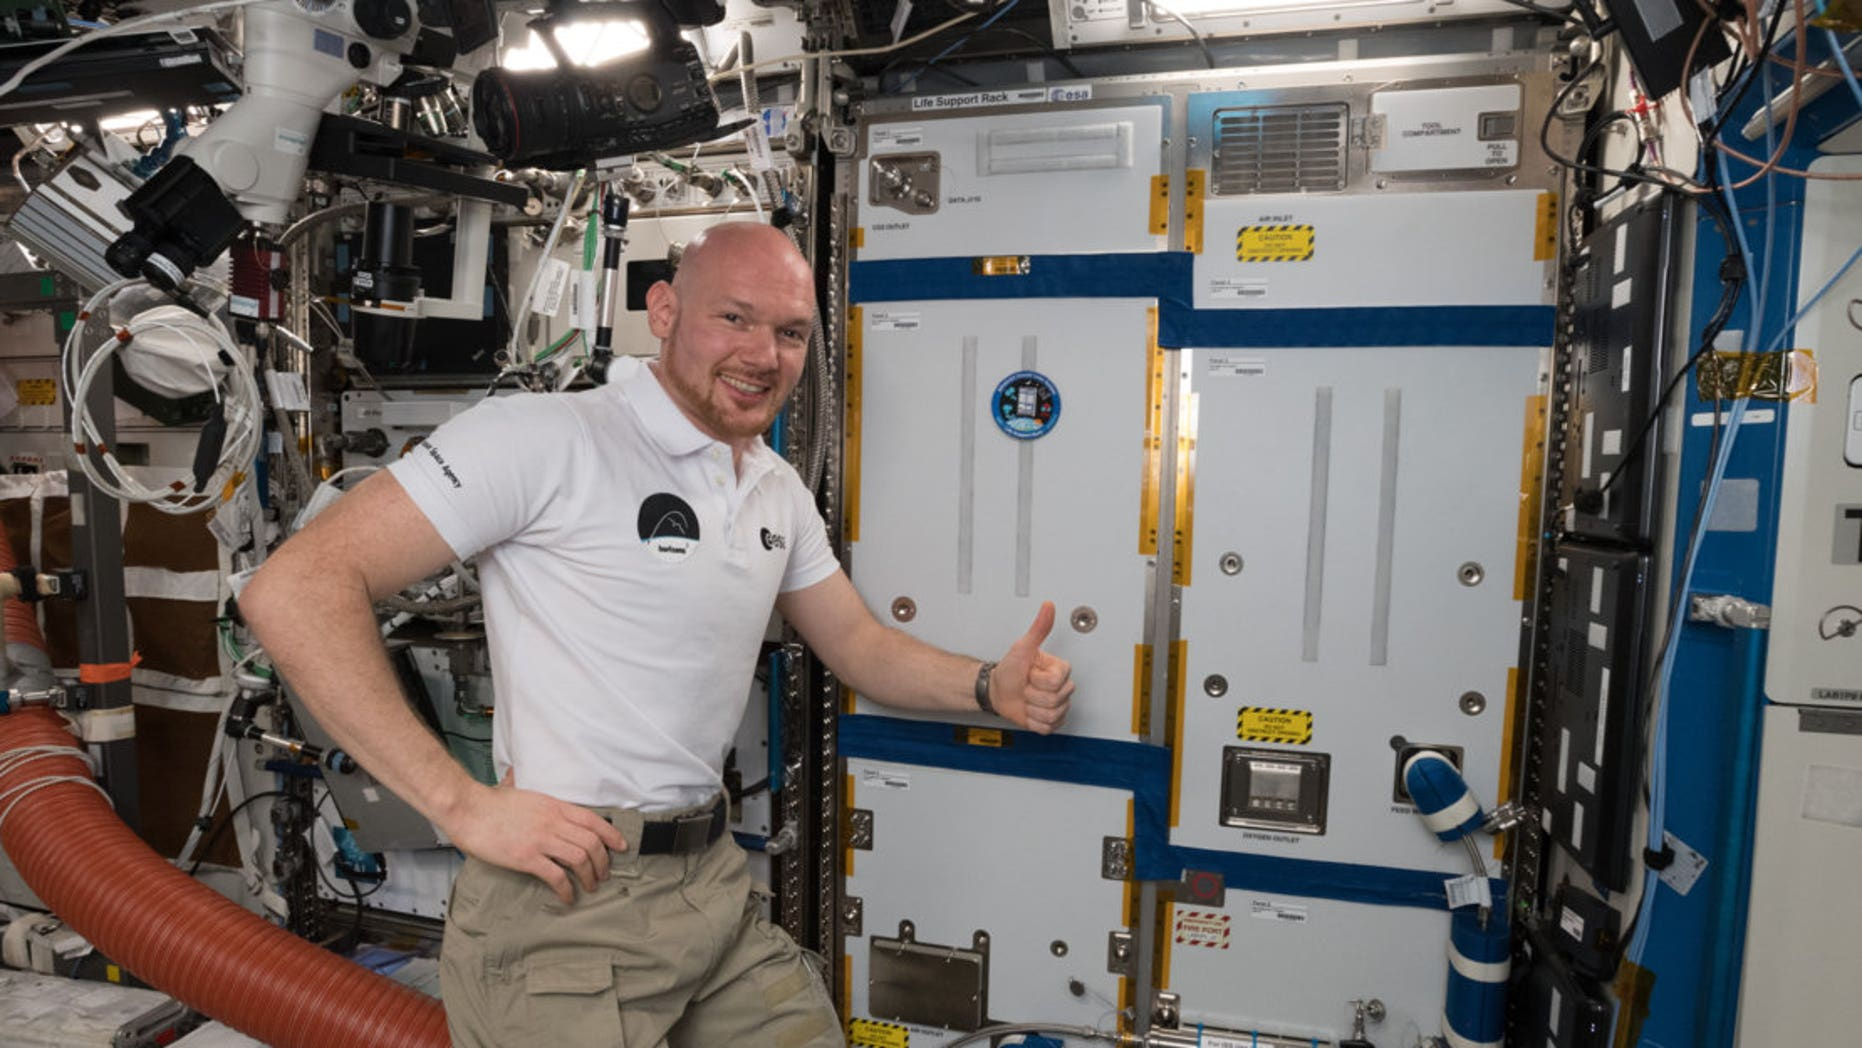 ESA astronaut Alexander Gerst poses on Oct. 19, 2018, with the ACLS life-support rack, newly installed on the International Space Station.